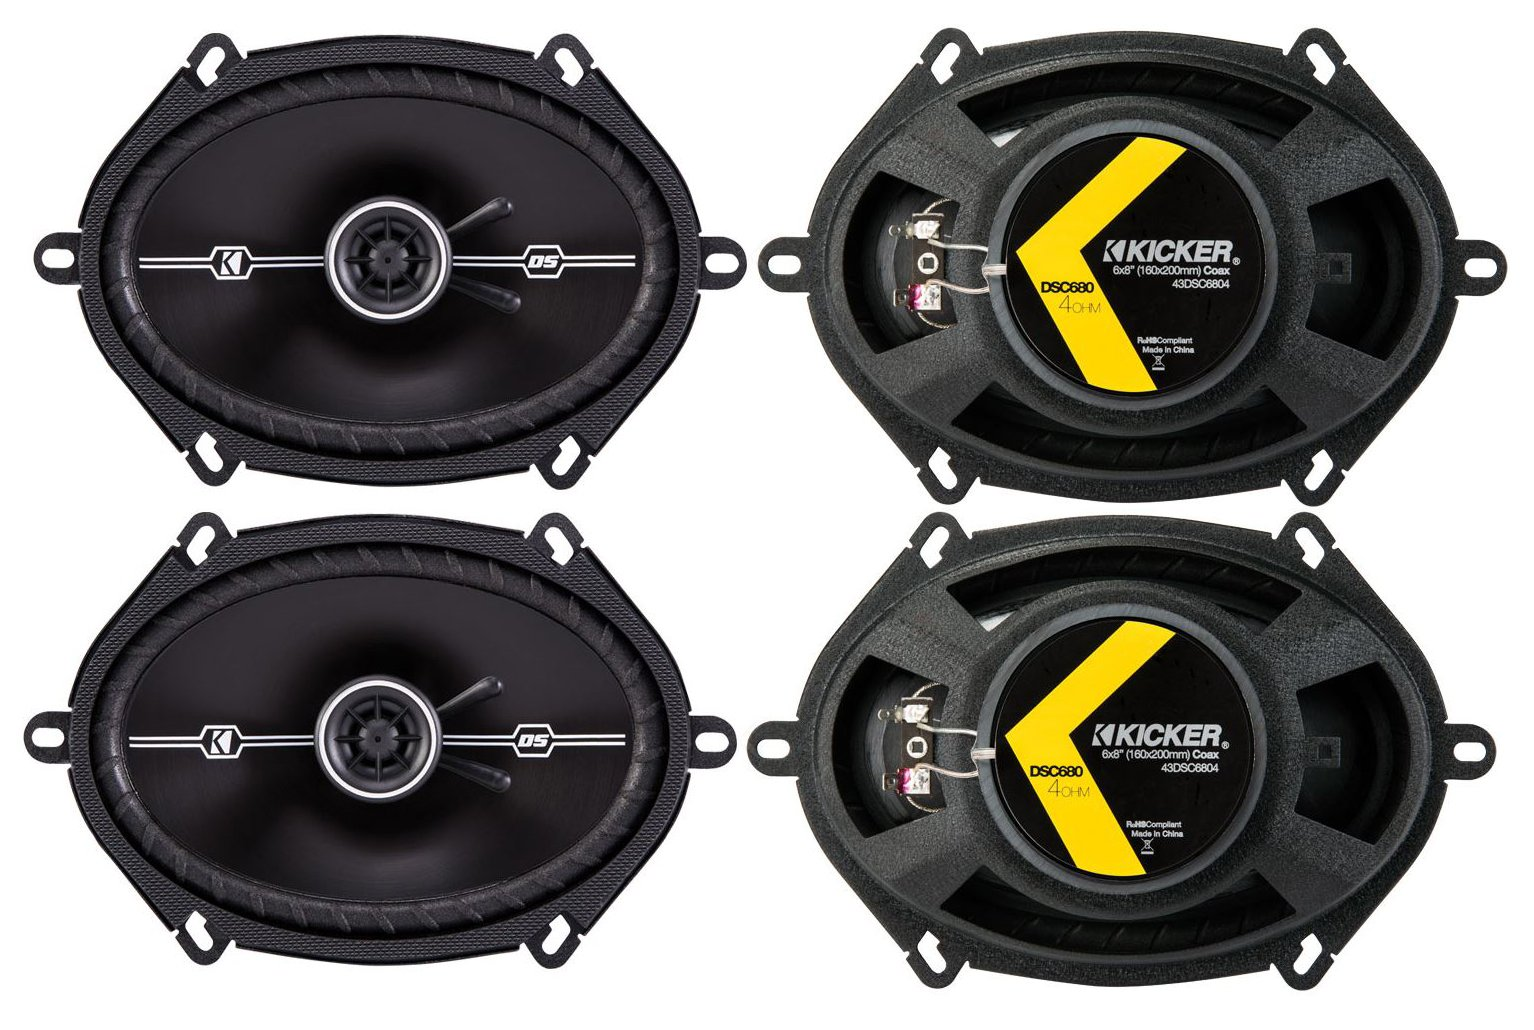 4) Kicker 43DSC6804 D-Series 6x8'' 200 Watt 2-Way 4-Ohm Car Coaxial Speakers Four